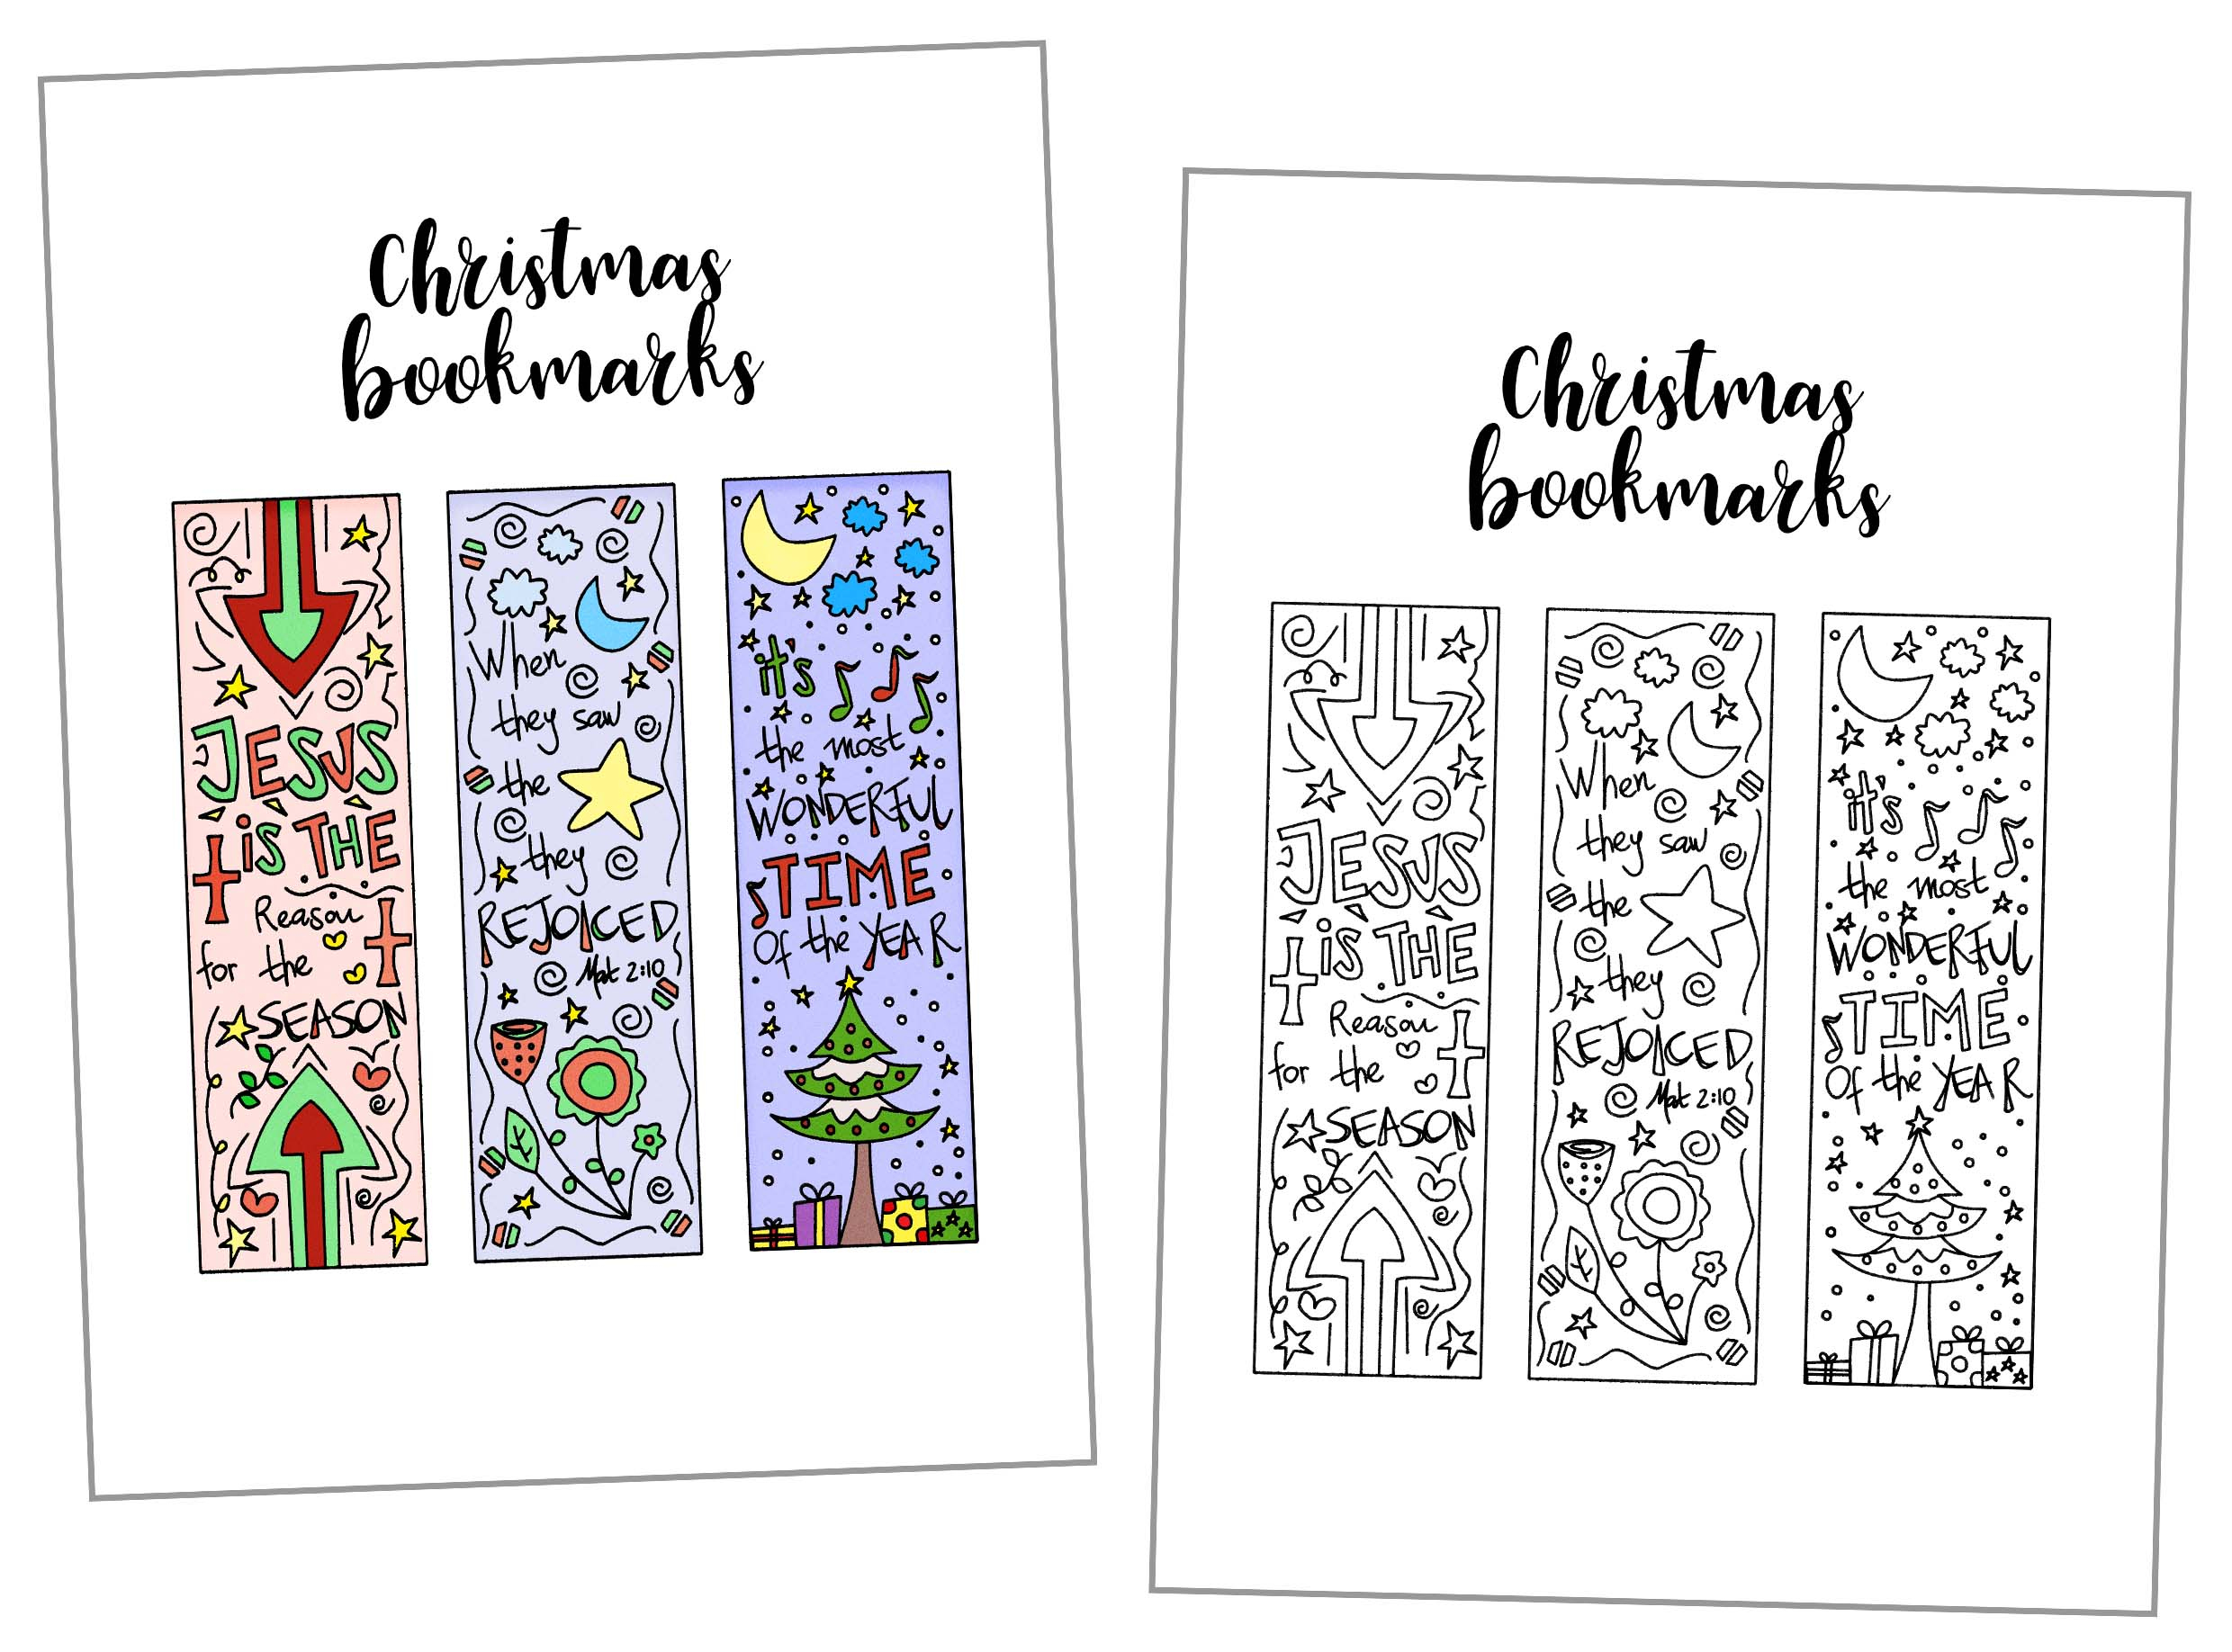 Coloring Christmas Bookmarks Free Printable ~ Daydream Into Reality - Free Printable Christmas Bookmarks To Color